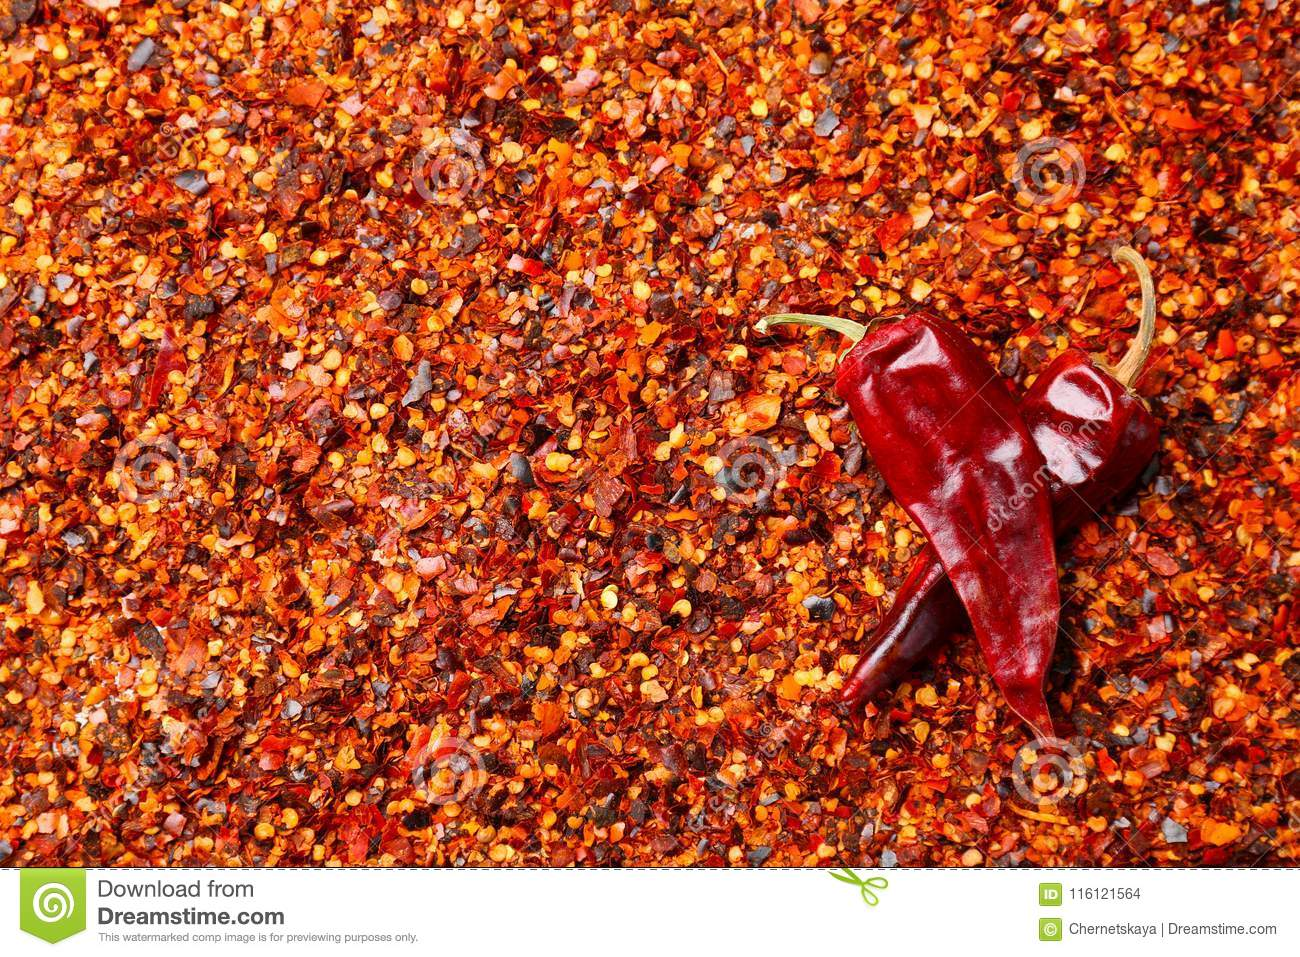 Crushed chili pepper and pods